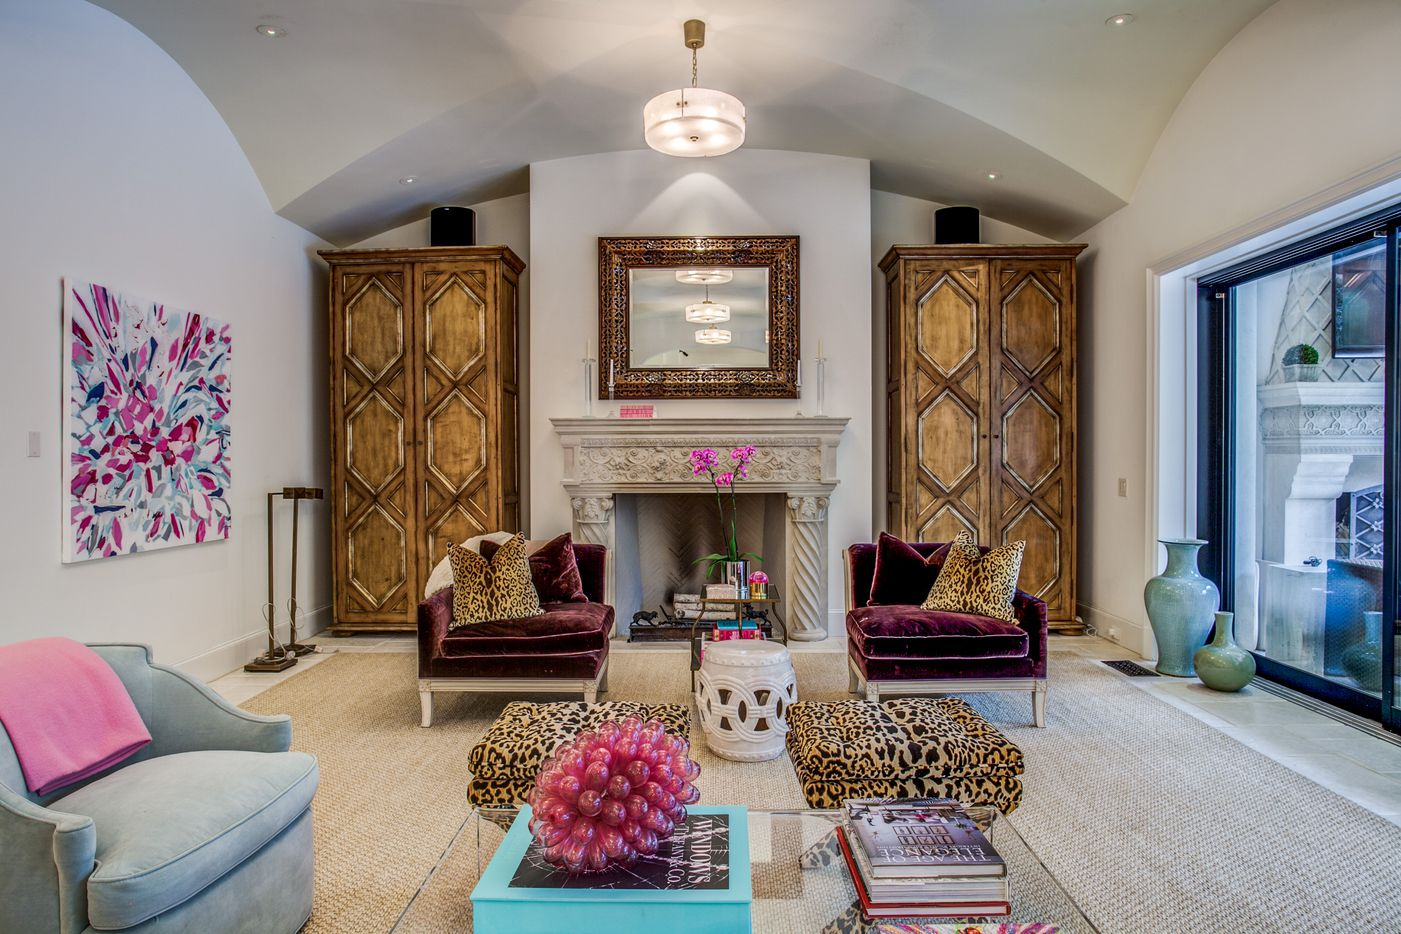 A look at the living room of the Dallas home Kameron Westcott is selling.